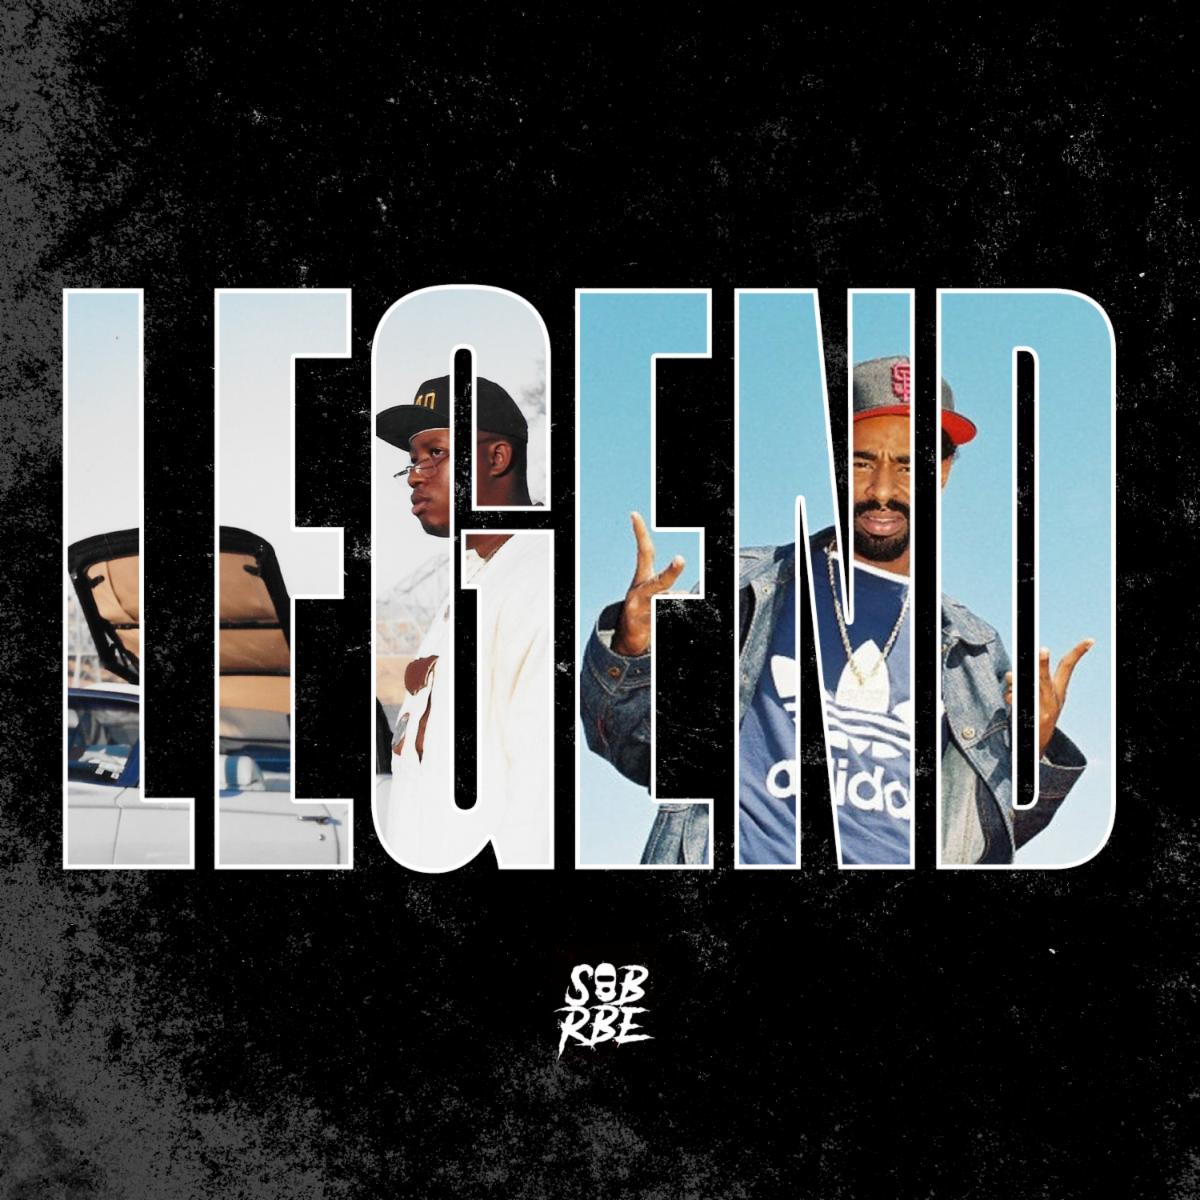 Listen to Bay Area rap crew @SOBxRBE's new song 'Legend' gum.to/xsWba3